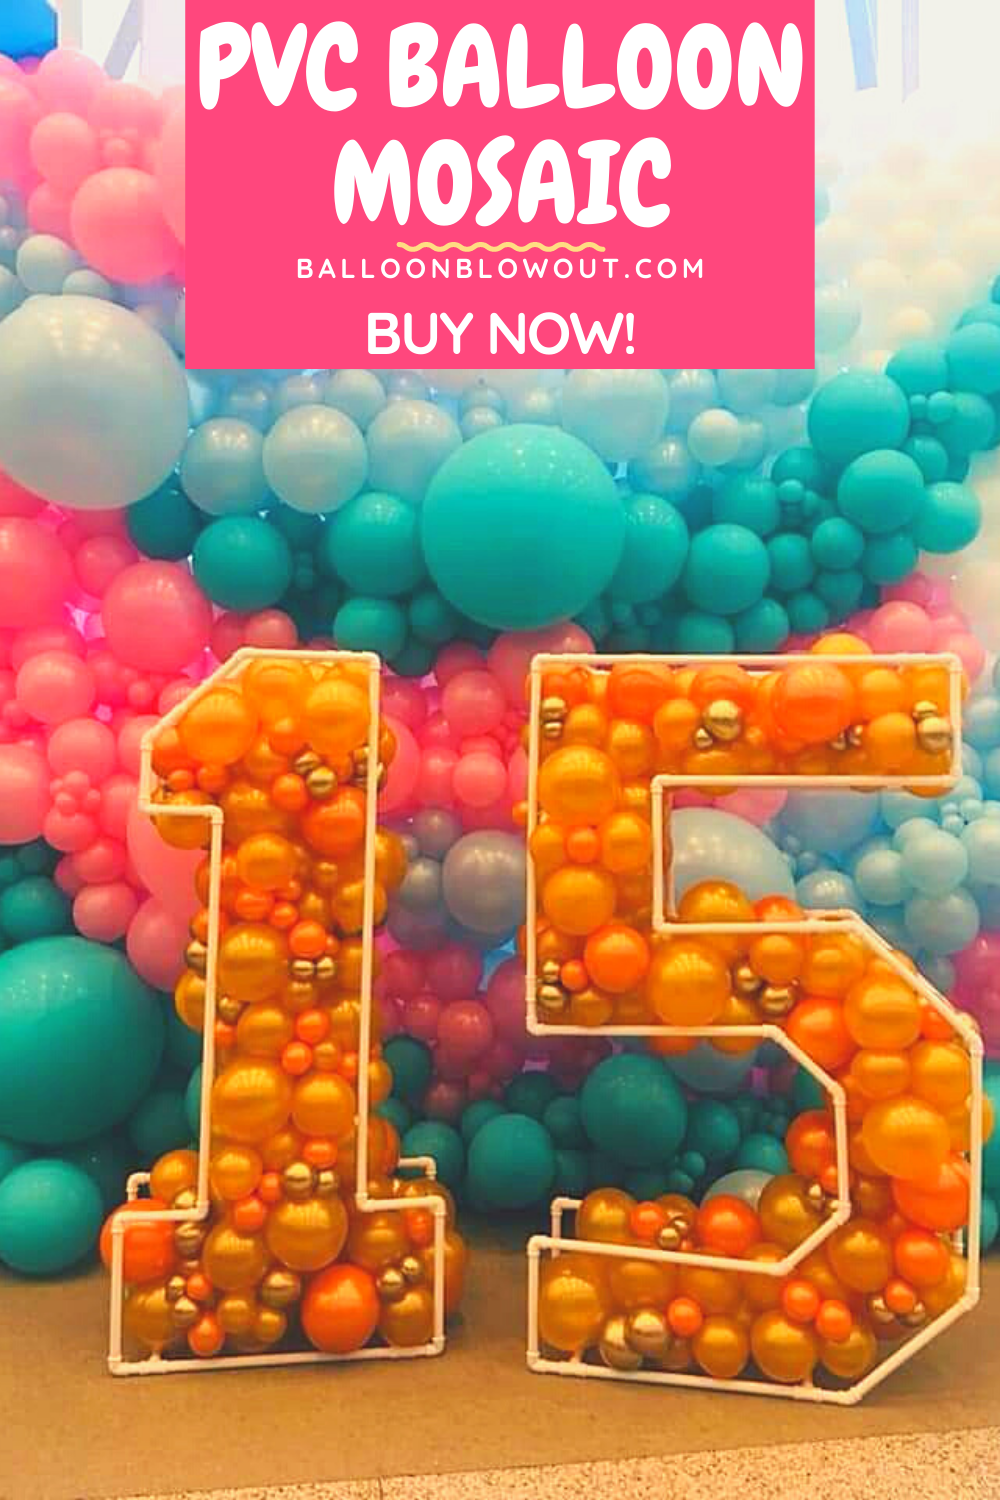 Giant letters and number templates Balloon Mosaico templates 6fts Pi\u00f1ata. jumbo numbers Number 40 balloon mosaic pattern jumbo letters